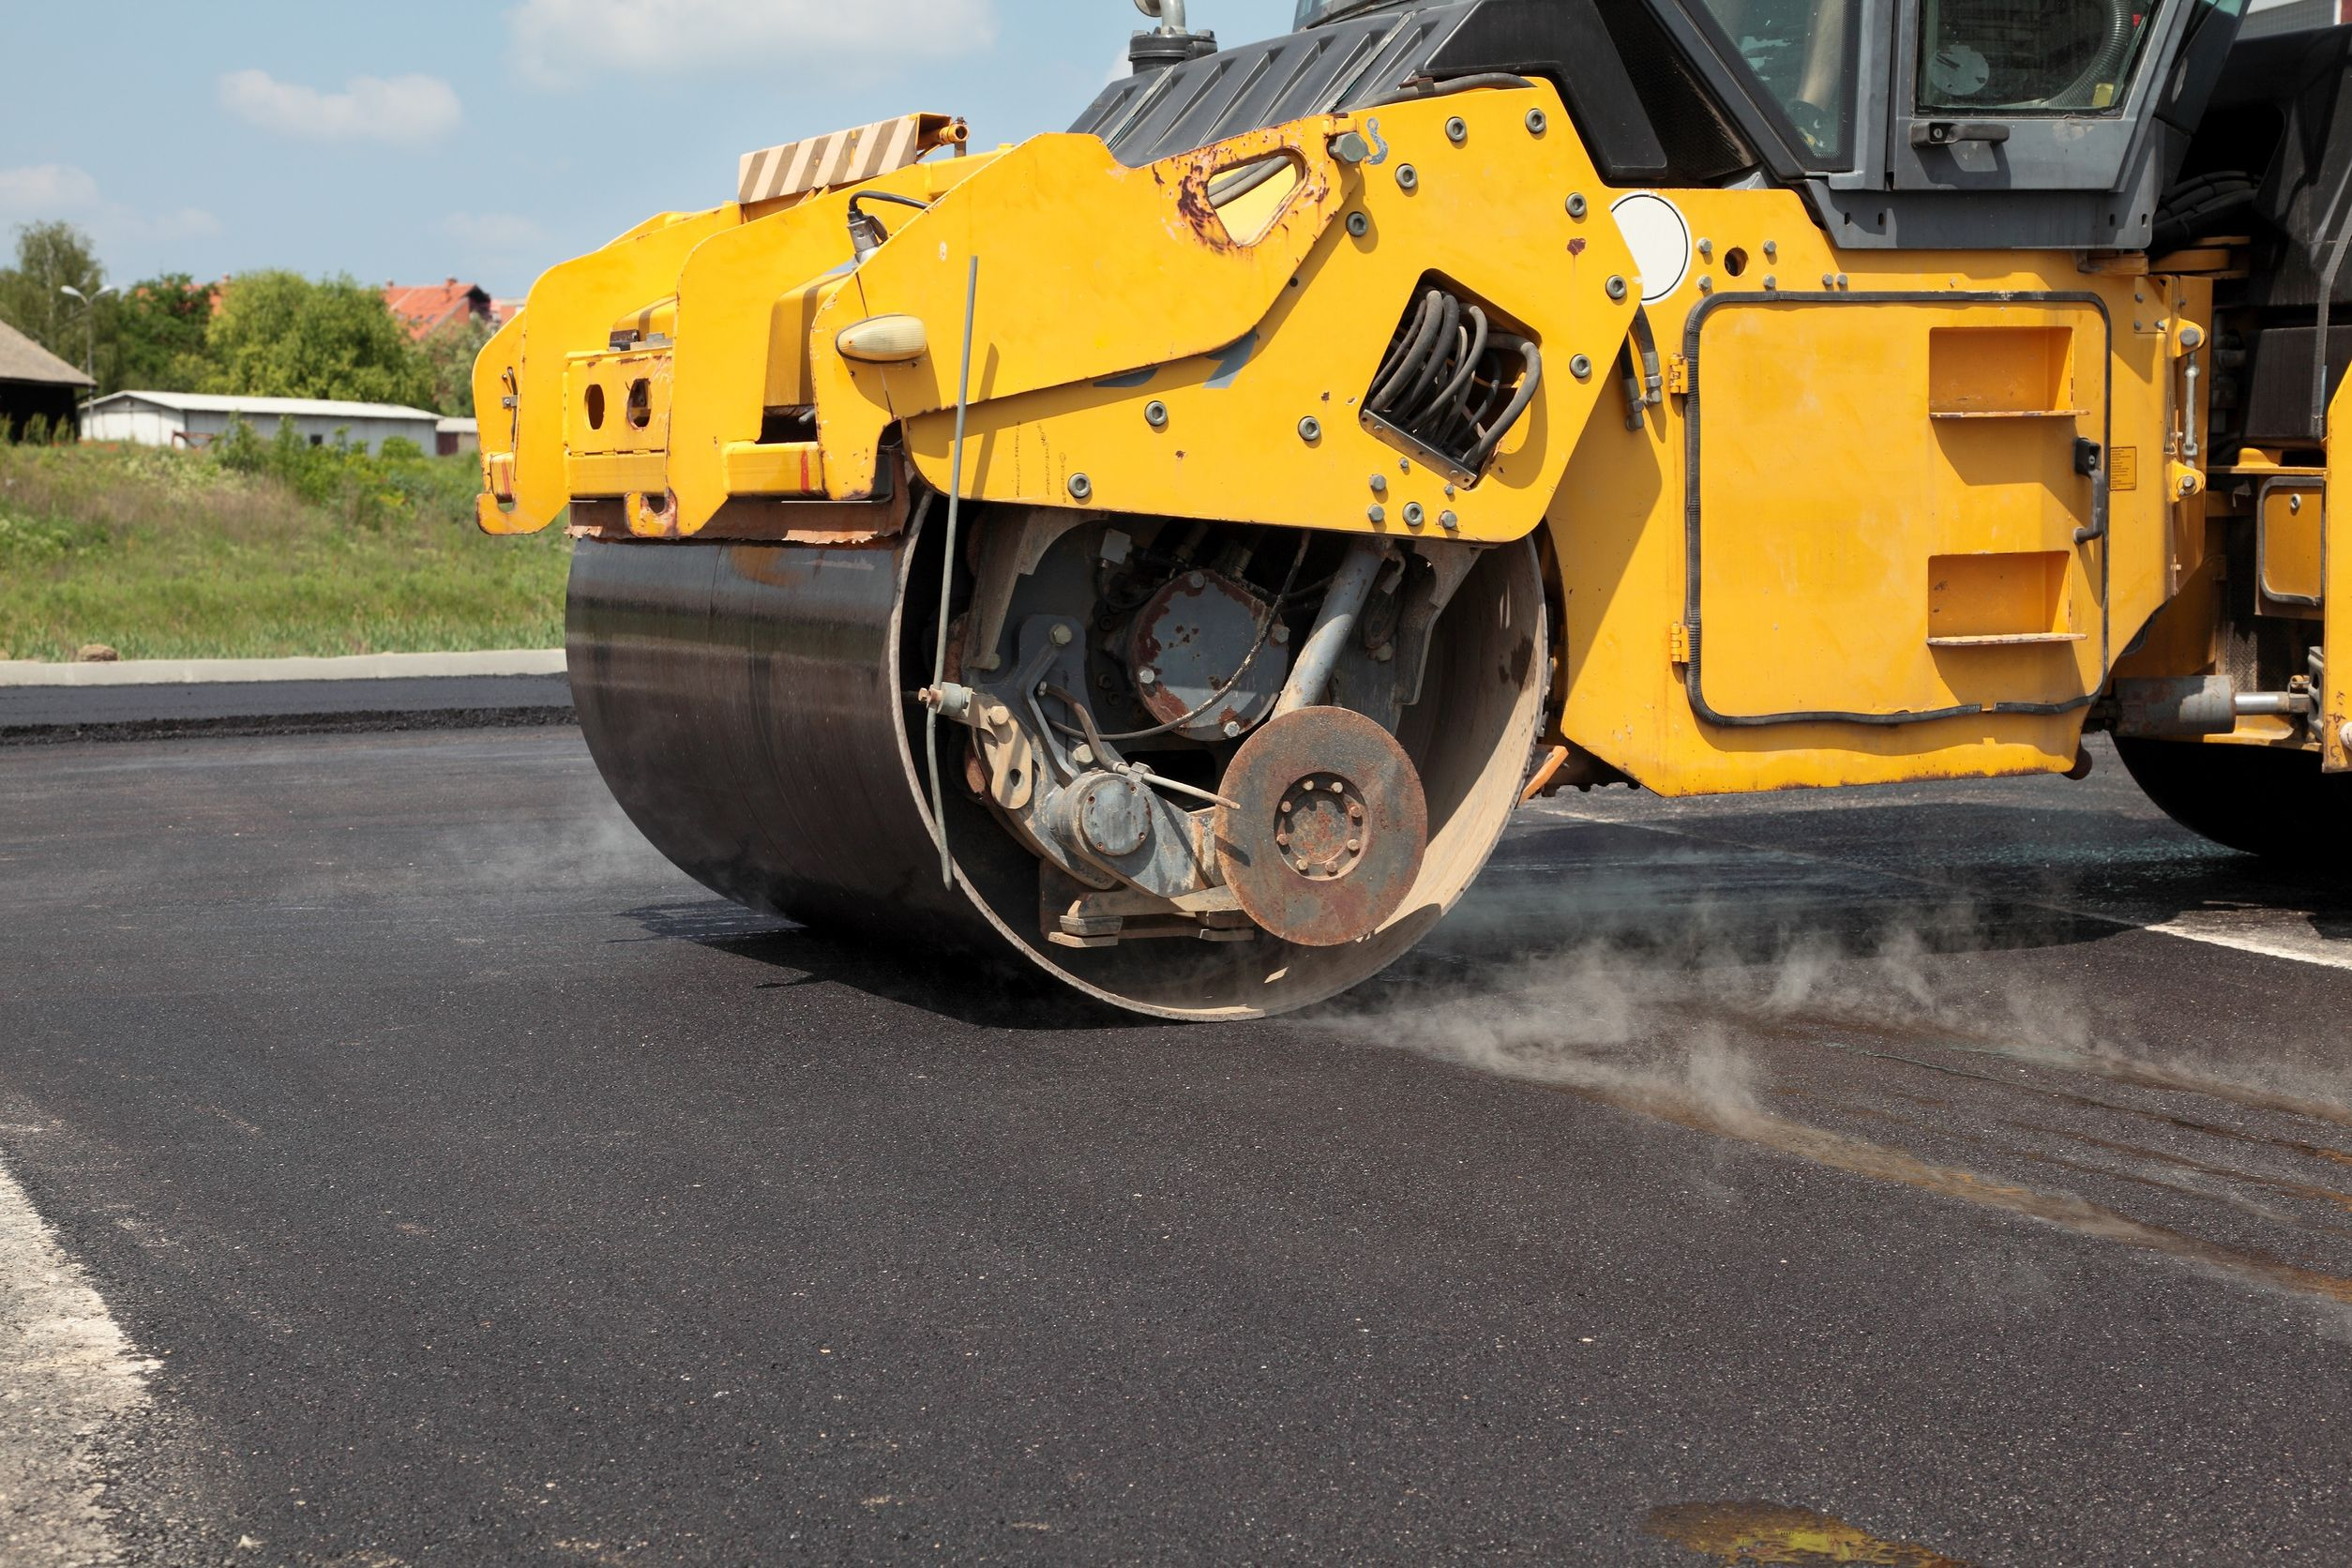 Asphalt Paving Company in Glen Burnie, Maryland | A&M Asphalt Paving